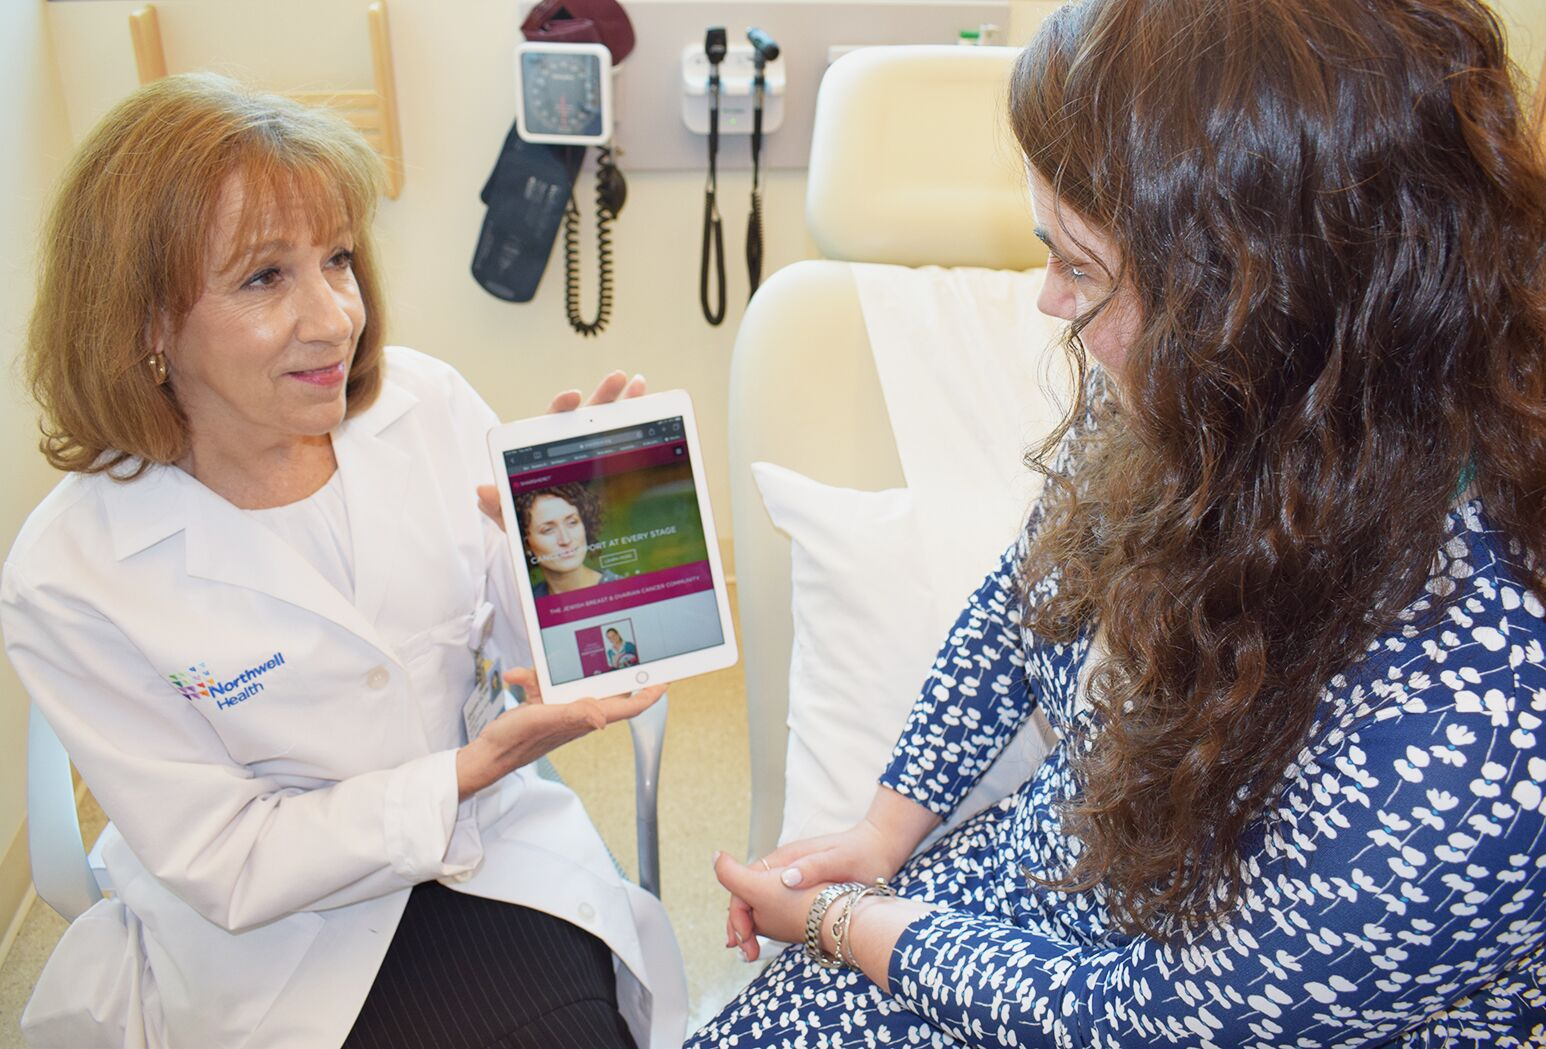 Sharon Lerman, an oncology social worker at Northwell's Cancer Institute in Lake Success, explains the Sharsheret resources available to a patient.